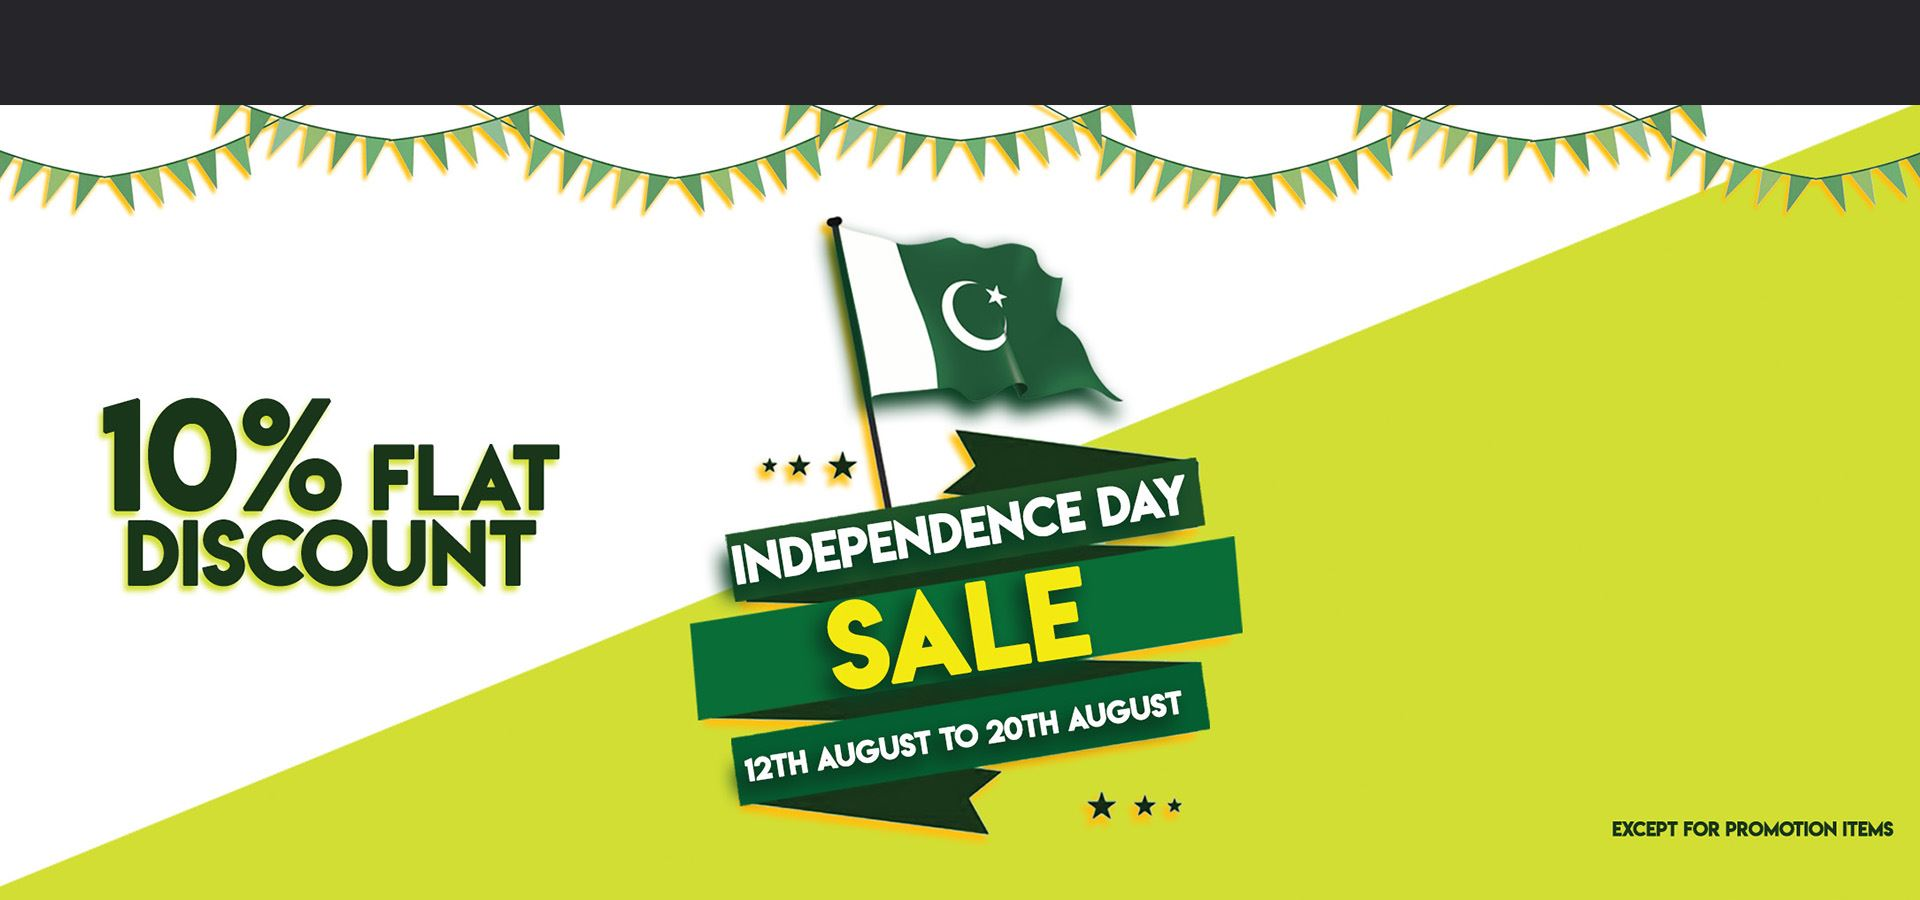 independence-day-sale-azadi-sale-supplements-proteins-14th-august-sale-offers